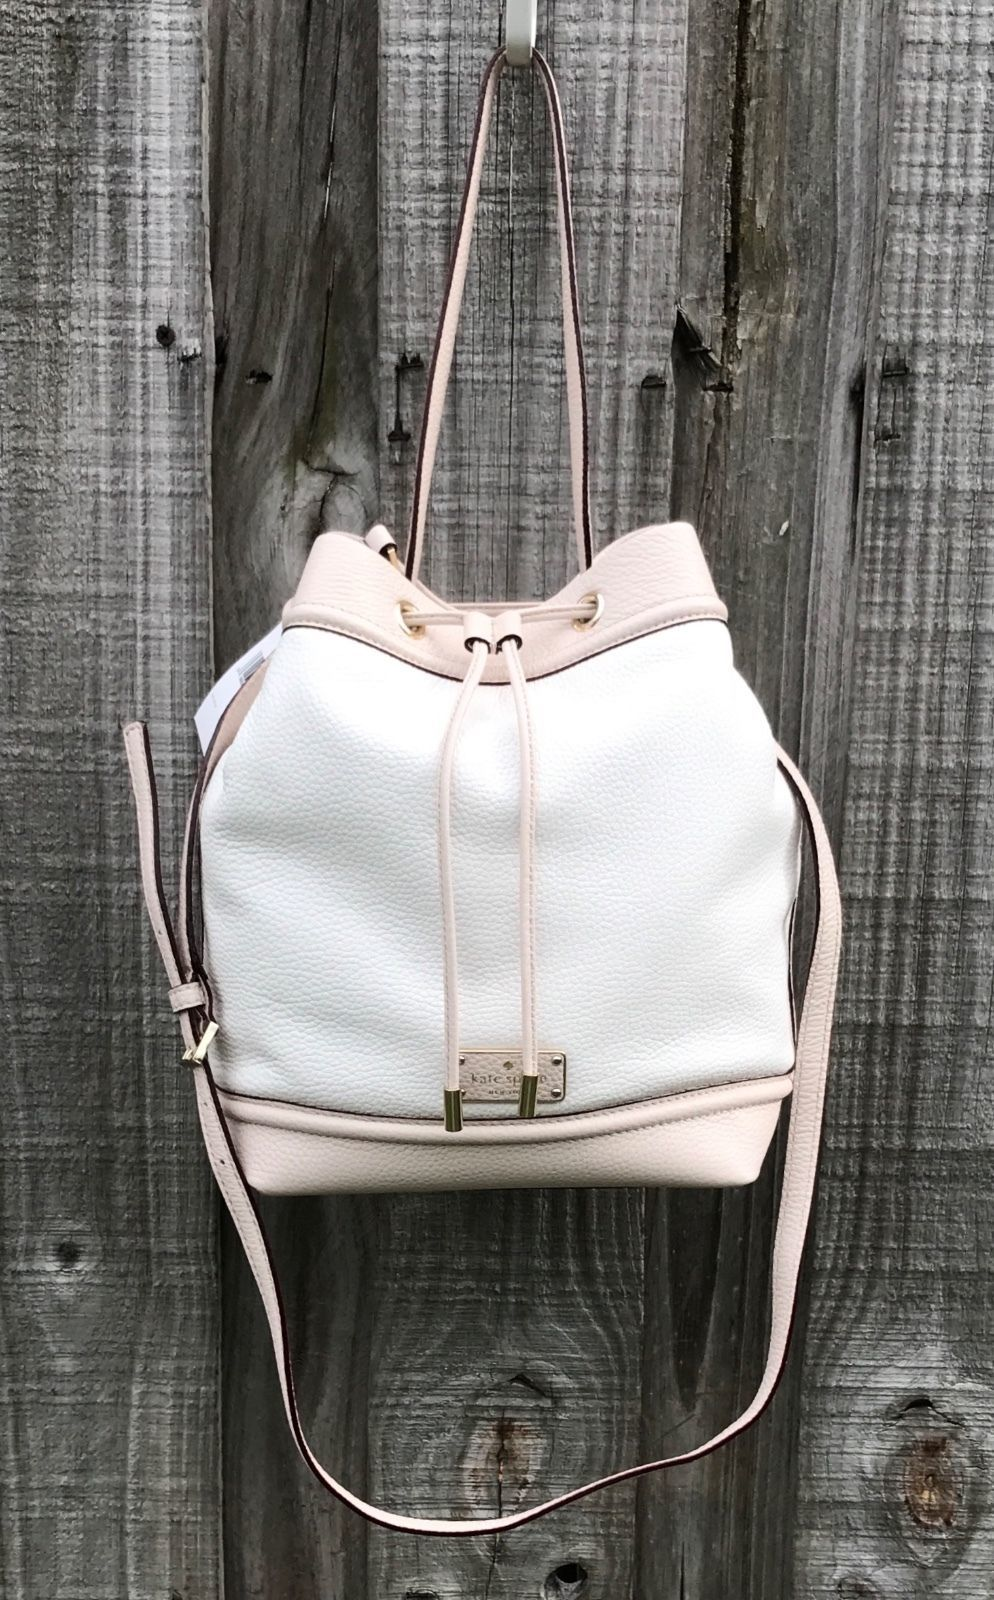 NEW Kate Spade Oliver Street JACEY Bucket Bag Cream/Pebble Leather NWT $359